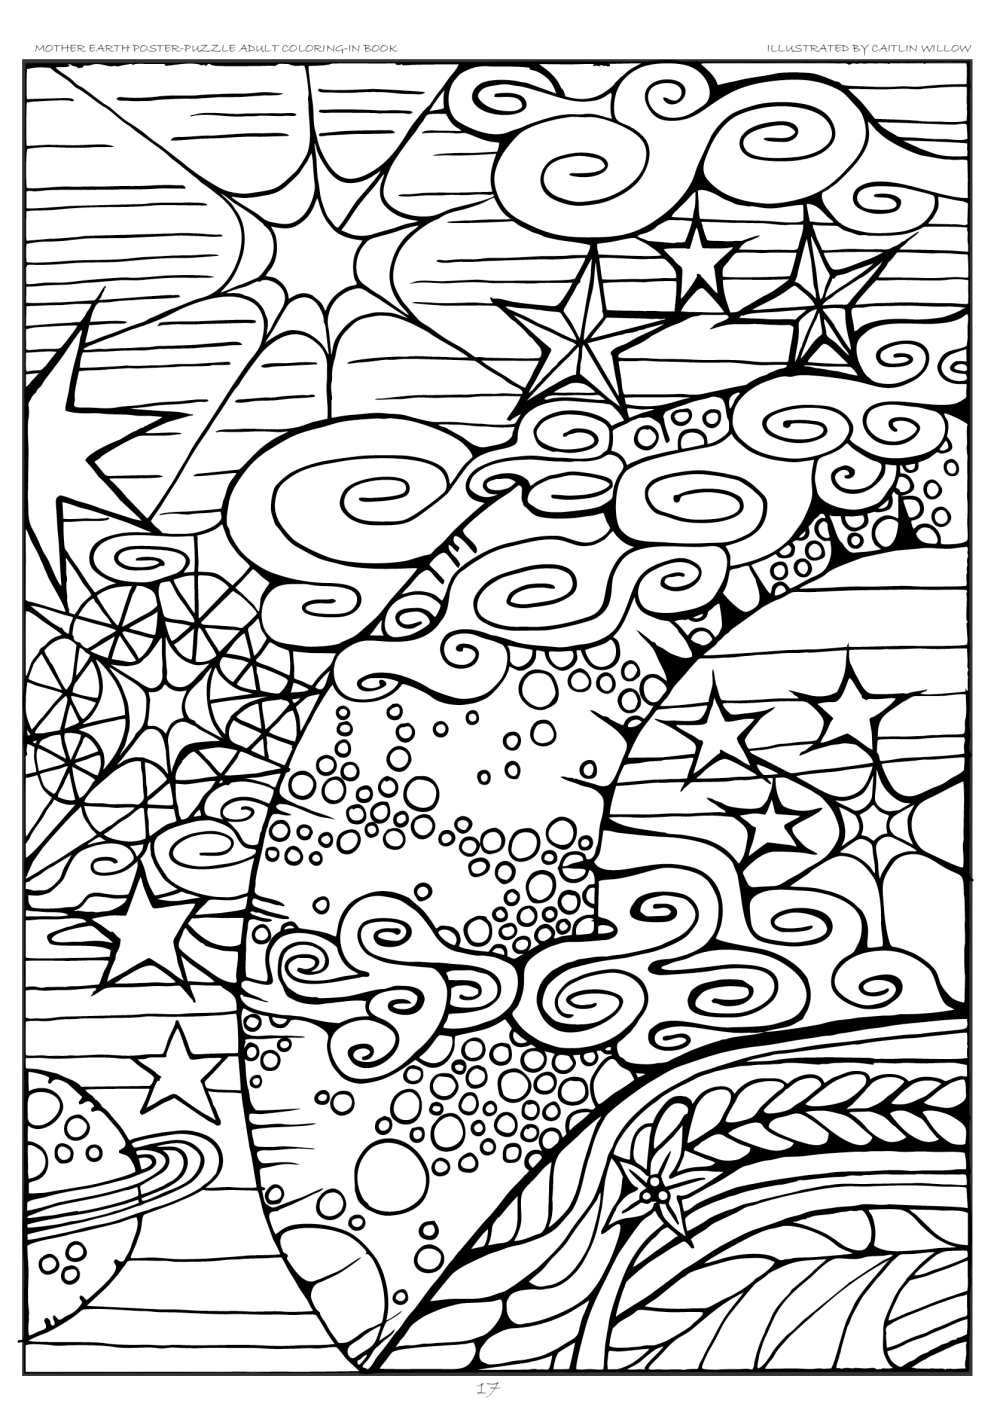 Free Coloring Page from Mother Earth Poster-Puzzle Adult ...